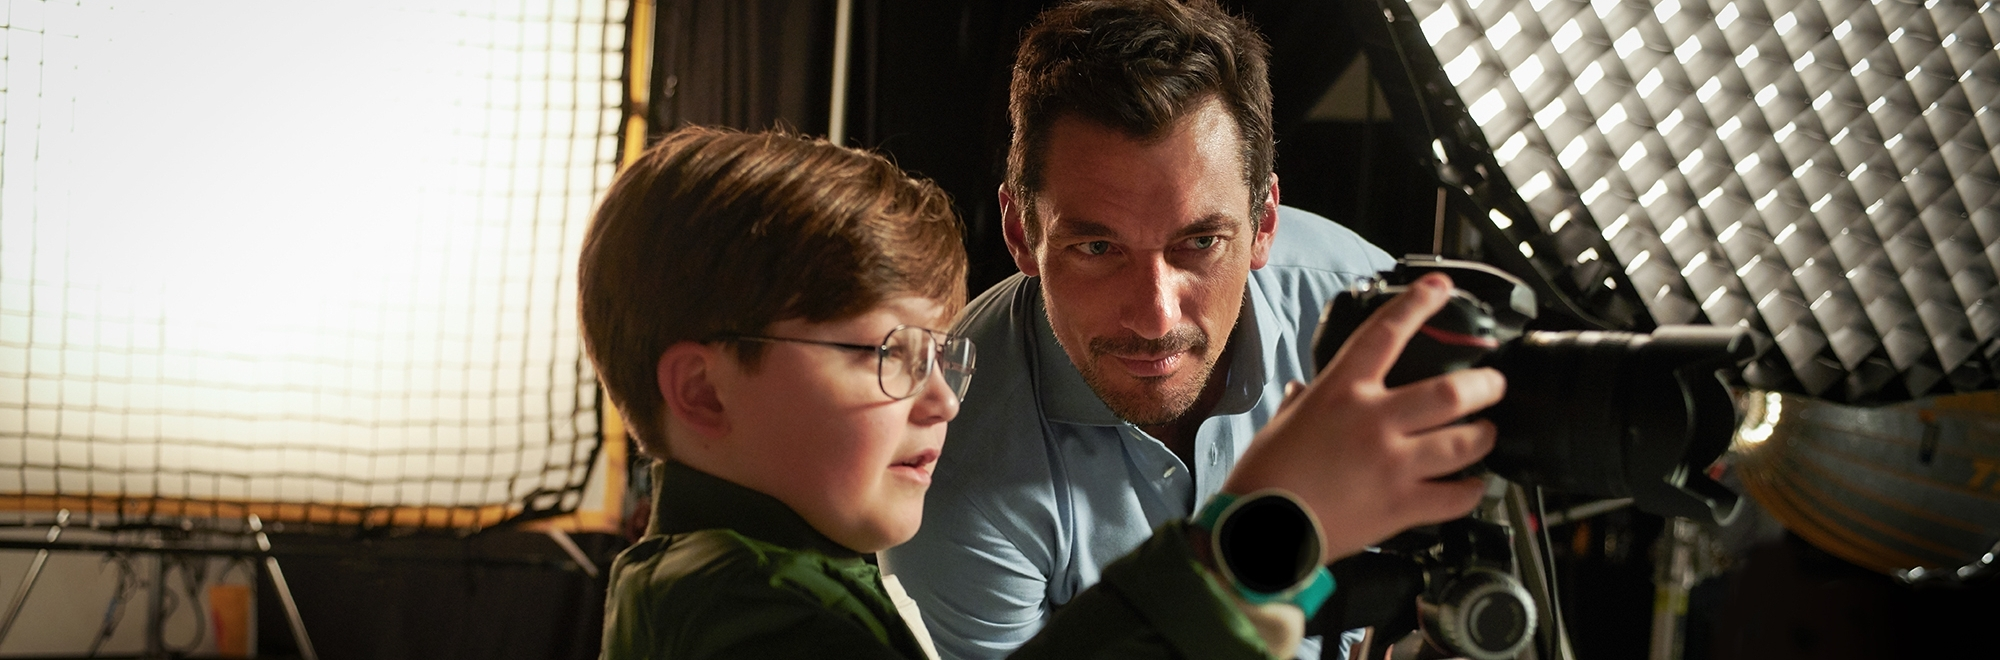 Vodafone teams up with model David Gandy on a shoot where the kids call the shots